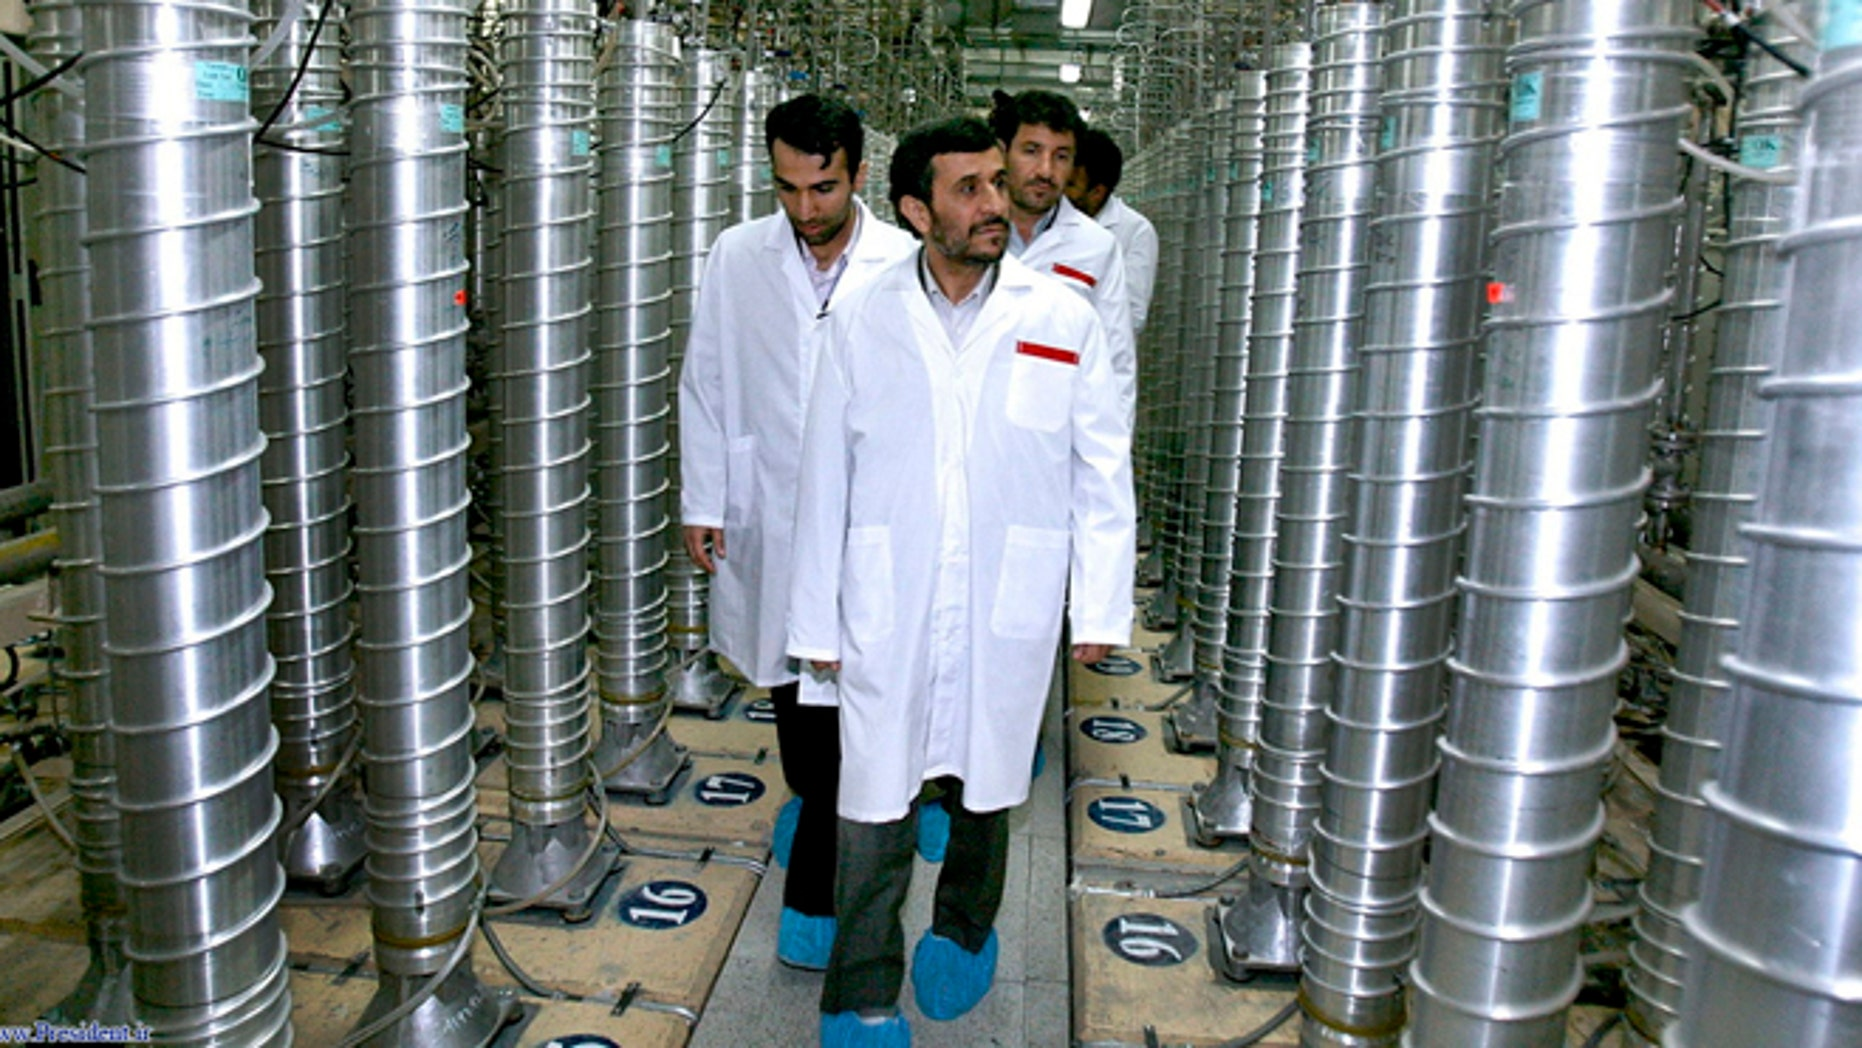 In this April 8, 2008 file photo released by the Iranian President's Office, Iranian President Mahmoud Ahmadinejad, front center, visits the Natanz Uranium Enrichment Facility some 200 miles south of the capital Tehran, Iran.  Technicians upgrading Irans main uranium enrichment facility have tripled partial or full installations of high-tech machines that could be used in a nuclear weapons program to more than 600 since starting their work three months ago, according to diplomats who demanded anonymity because they said they are not authorized to disclose the information, Wednesday April 17, 2013.